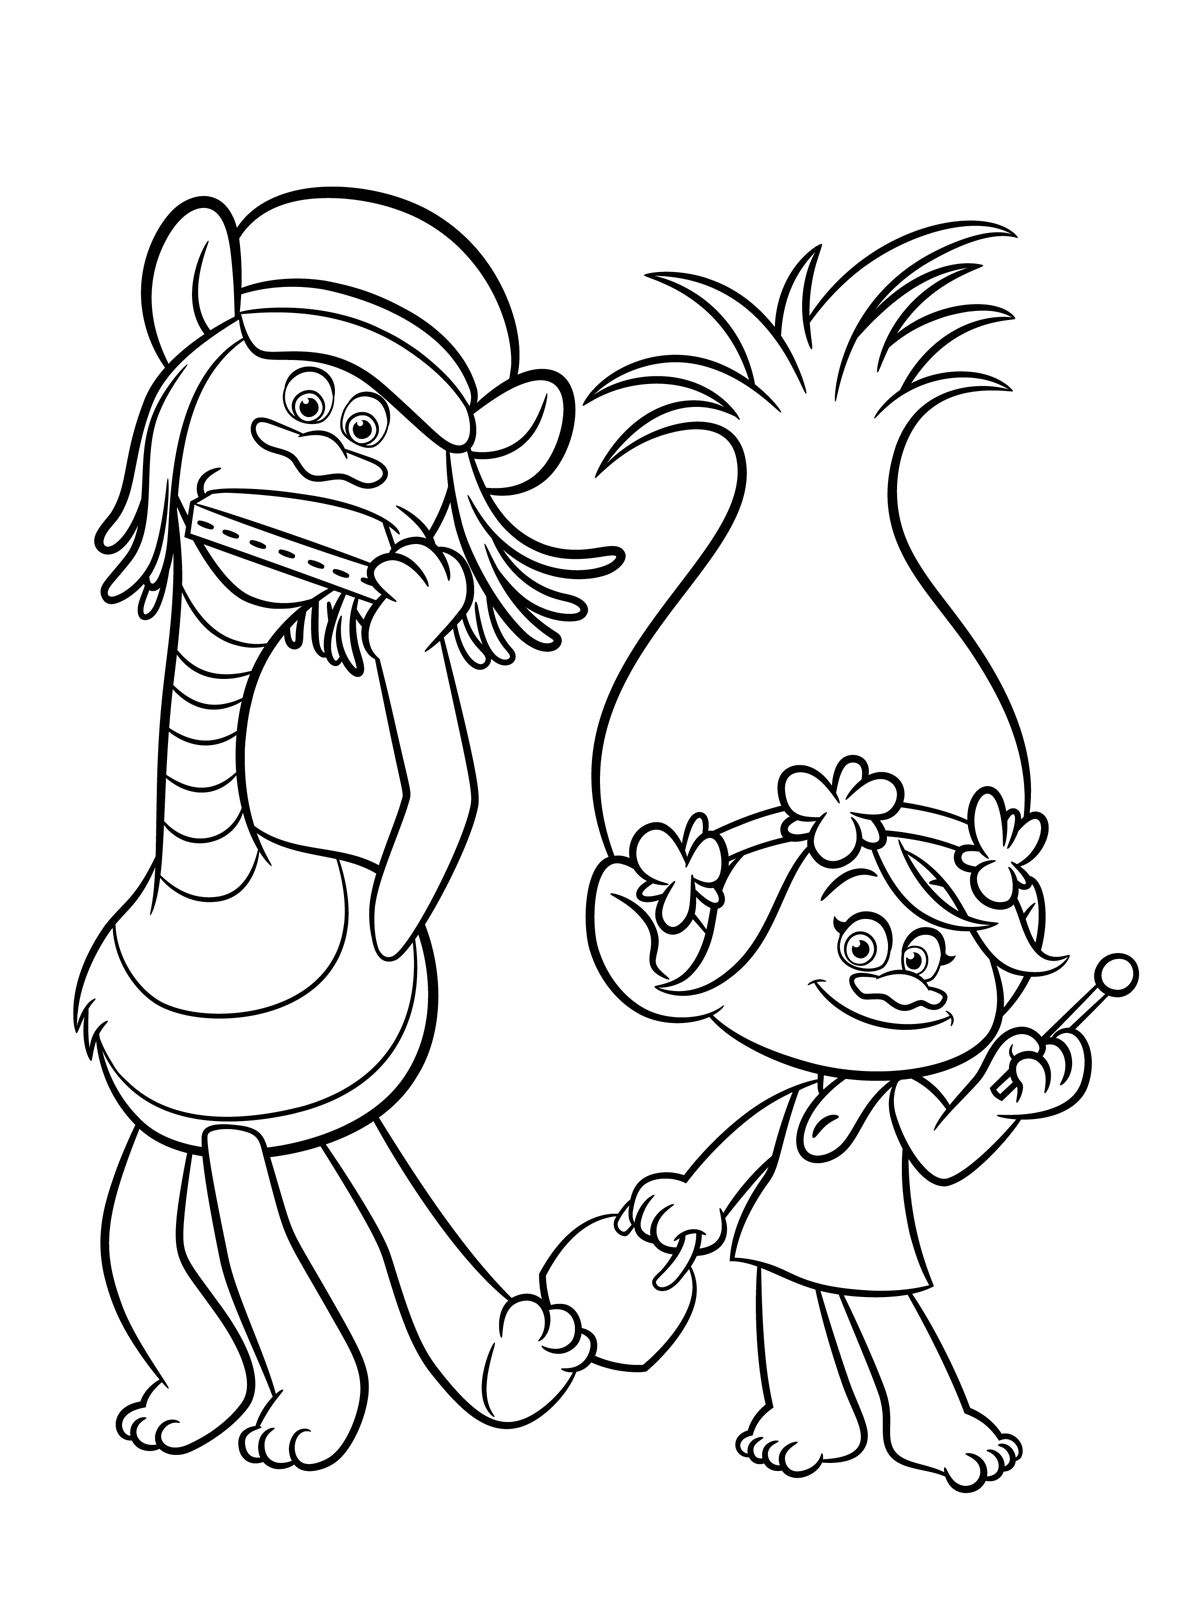 Coloring sheet coloring pictures for kids